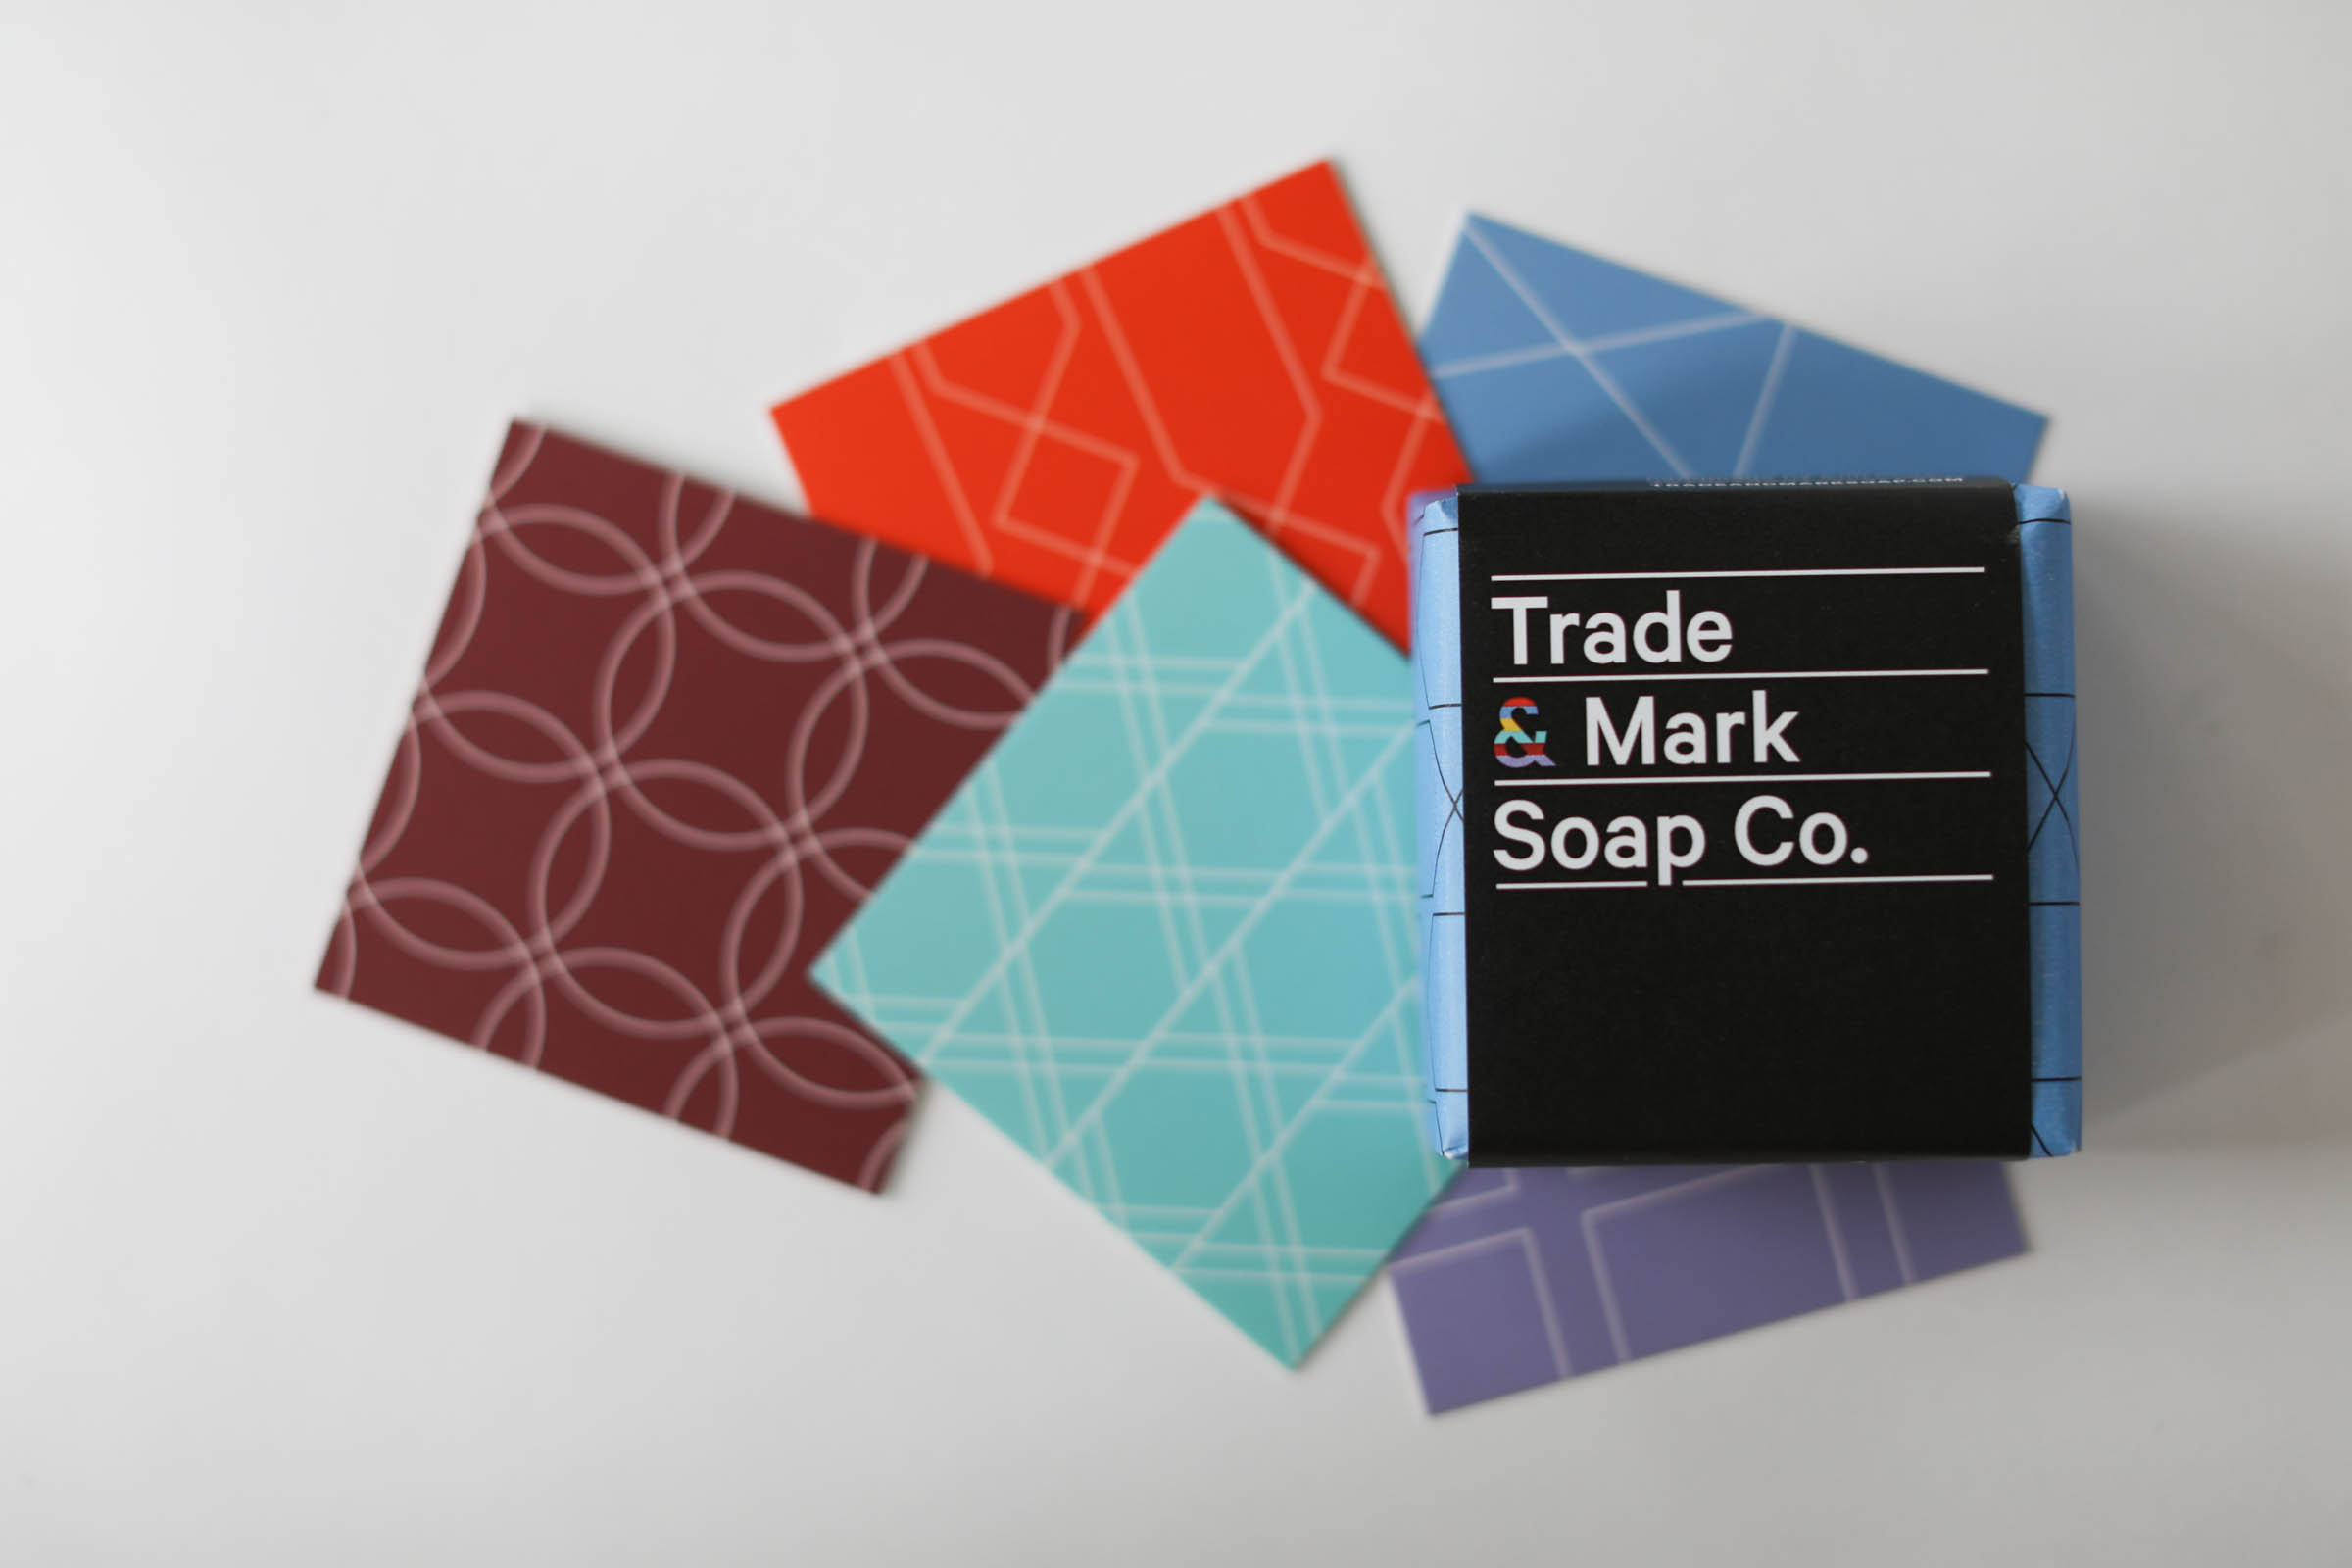 Trade + Mark Soap Co.